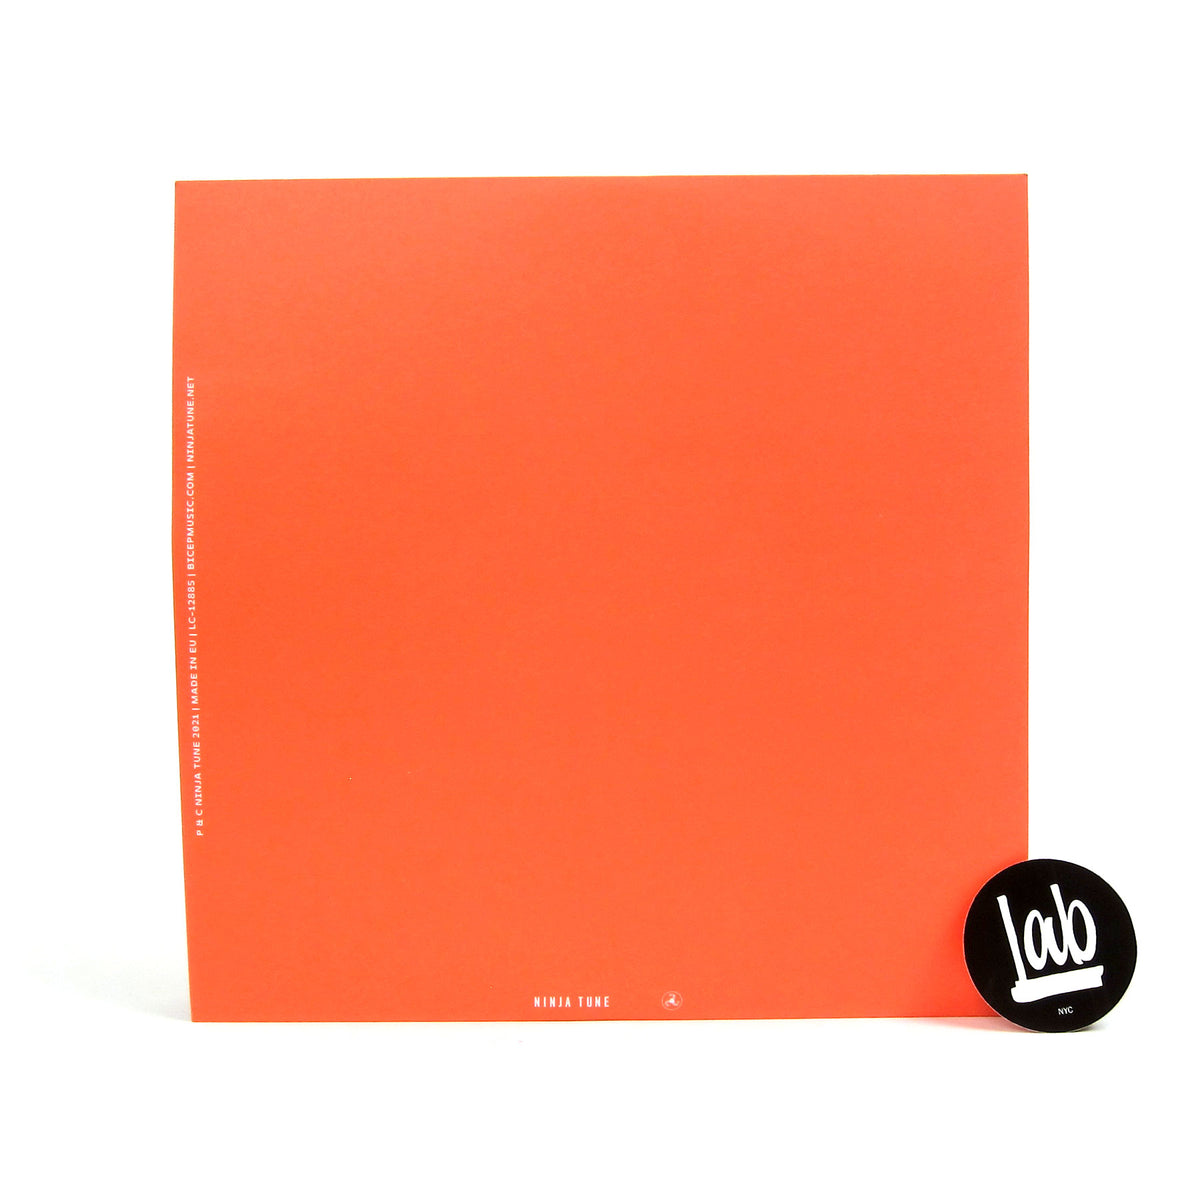 Bicep: Isles - Deluxe Edition (Colored Vinyl)